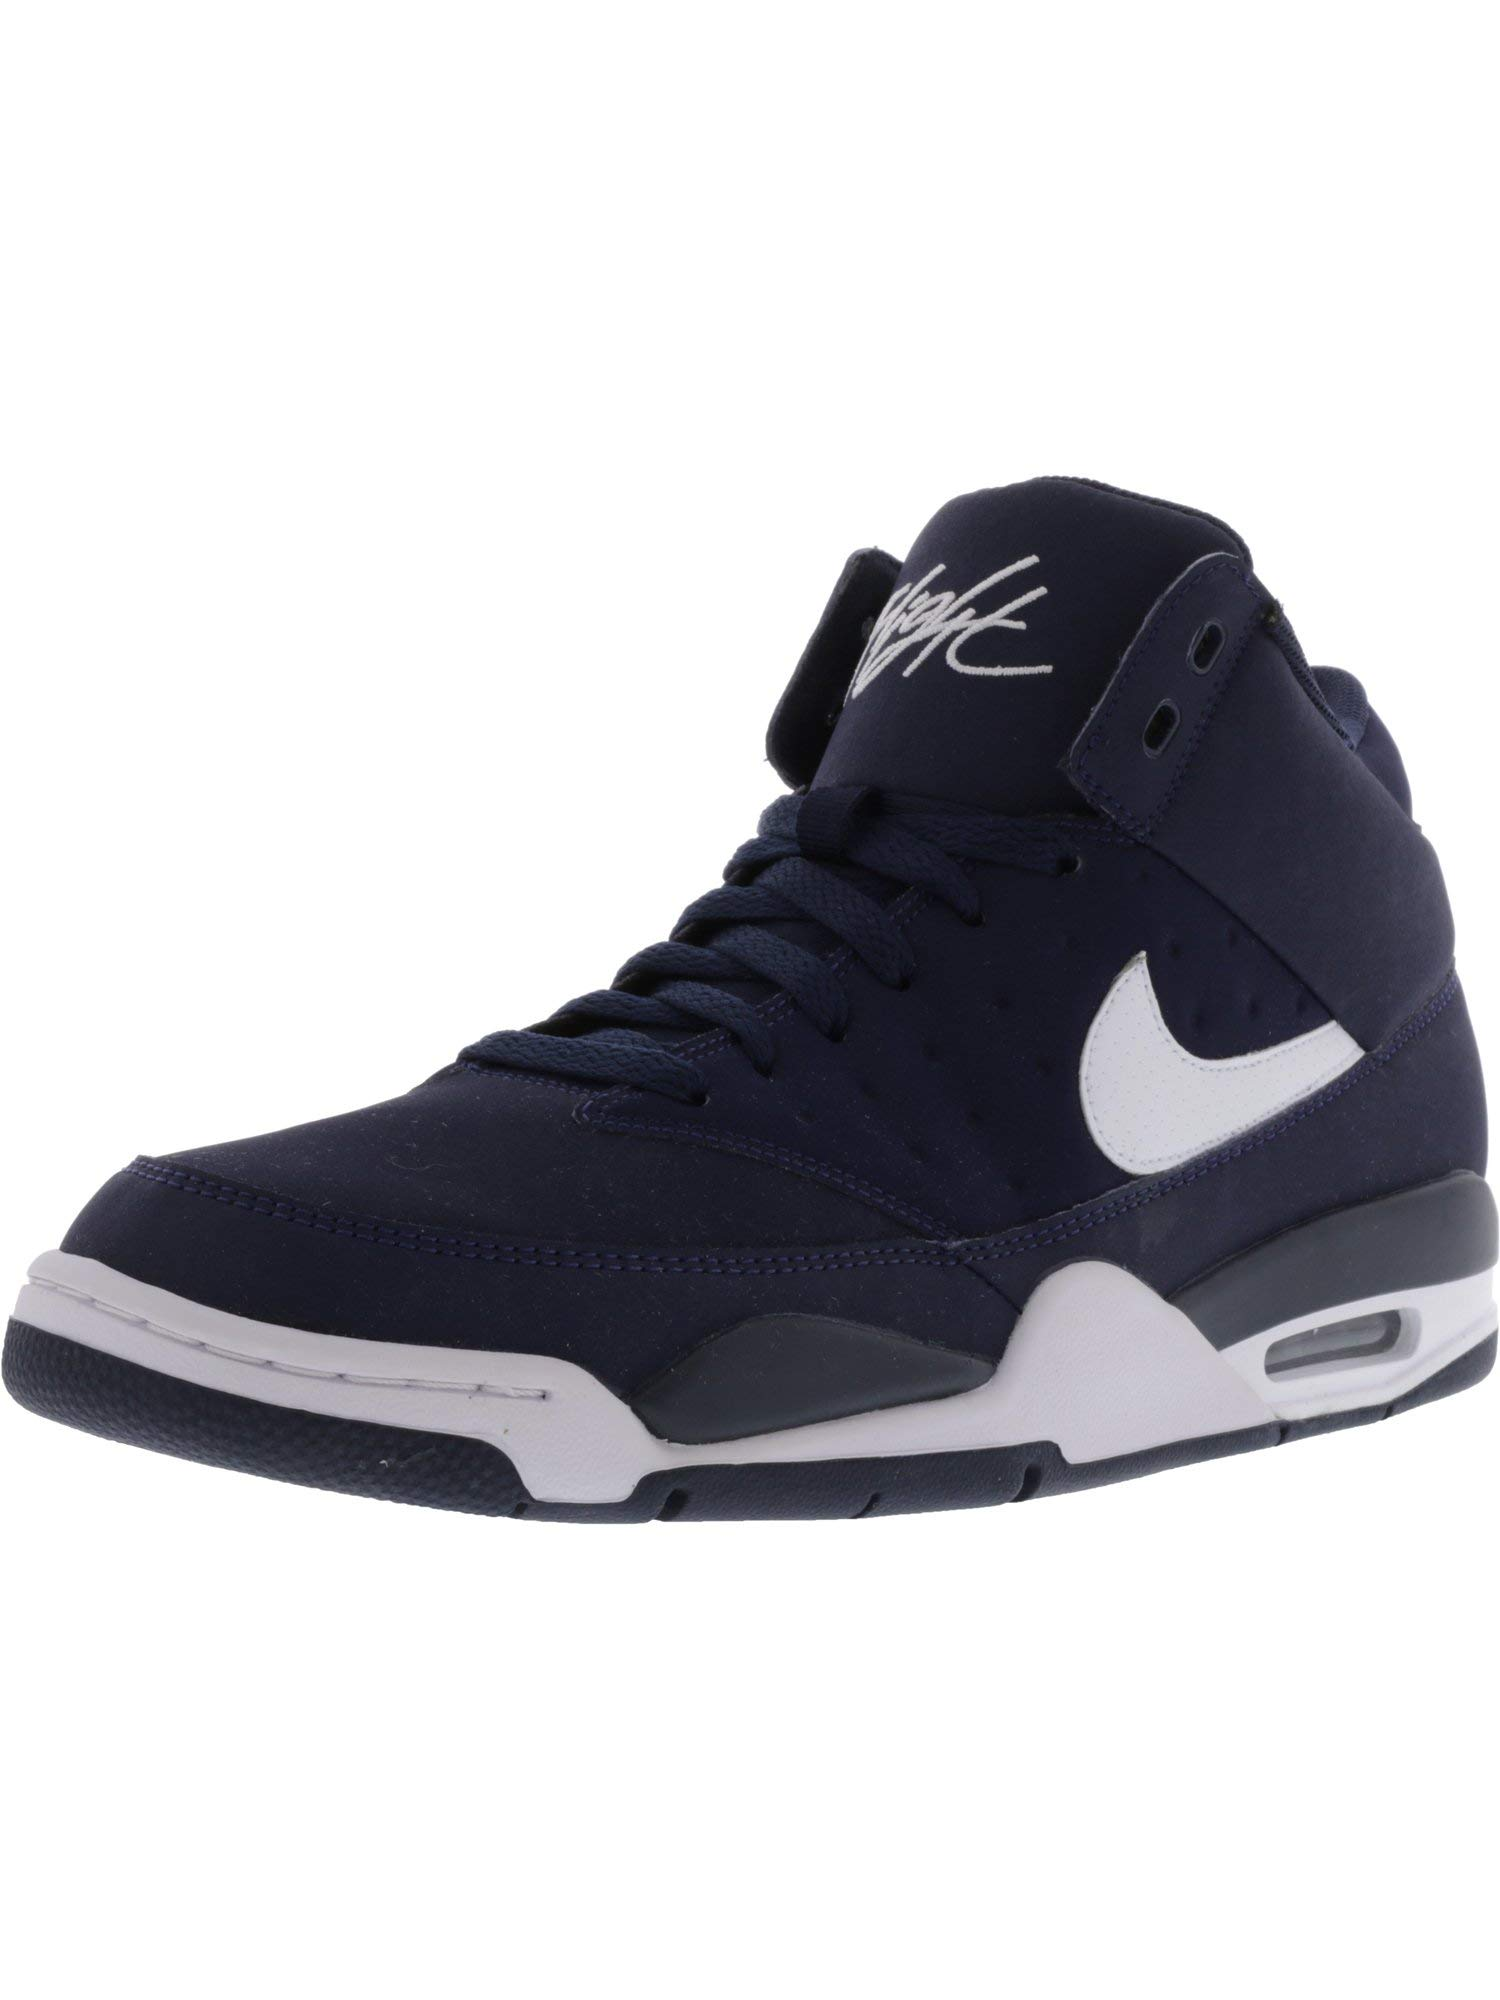 81bd0a0966d9 Galleon - Nike Men s Air Flight Classic Obsidian White High-Top Leather  Basketball Shoe - 11.5M